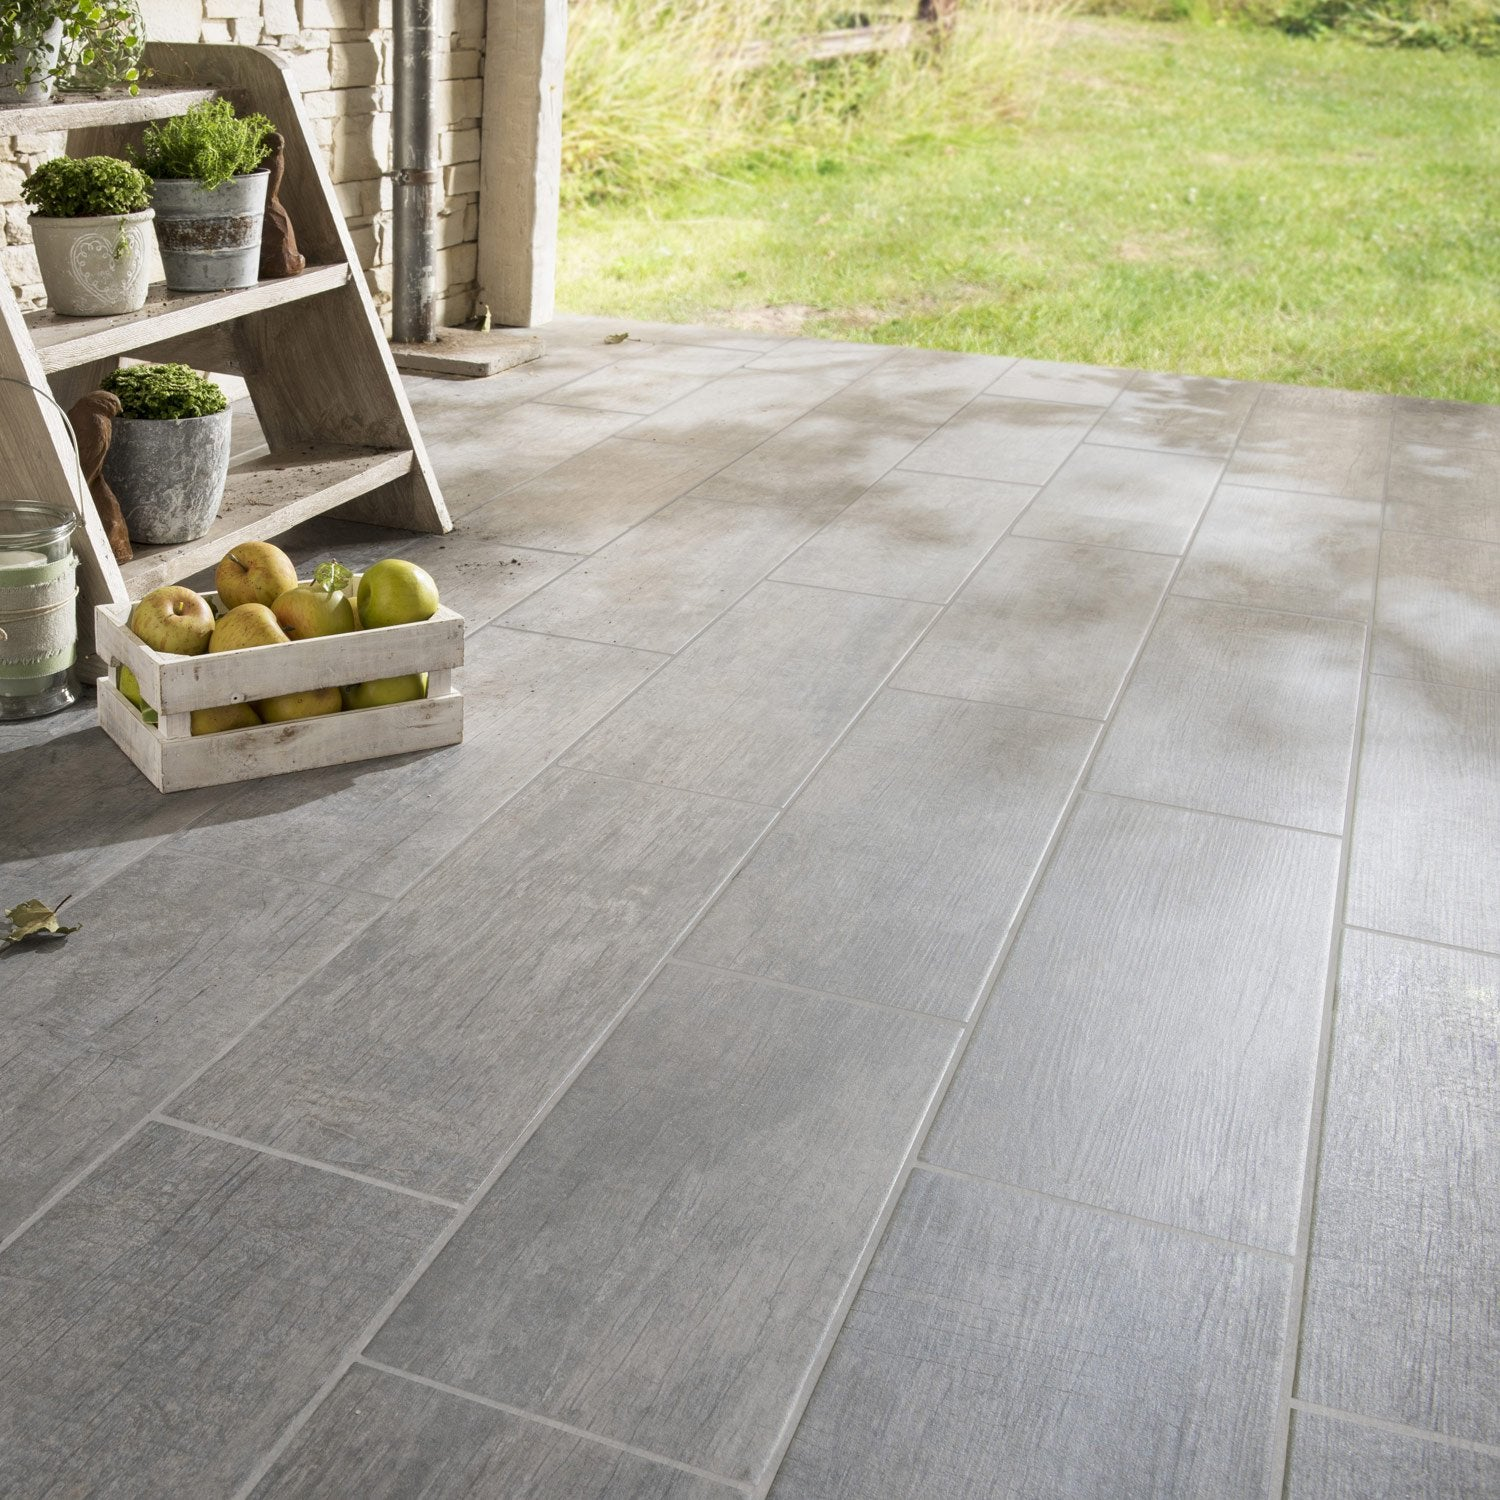 Carrelage sol anthracite effet bois river x cm leroy merlin - Carrelage terrasse point p ...